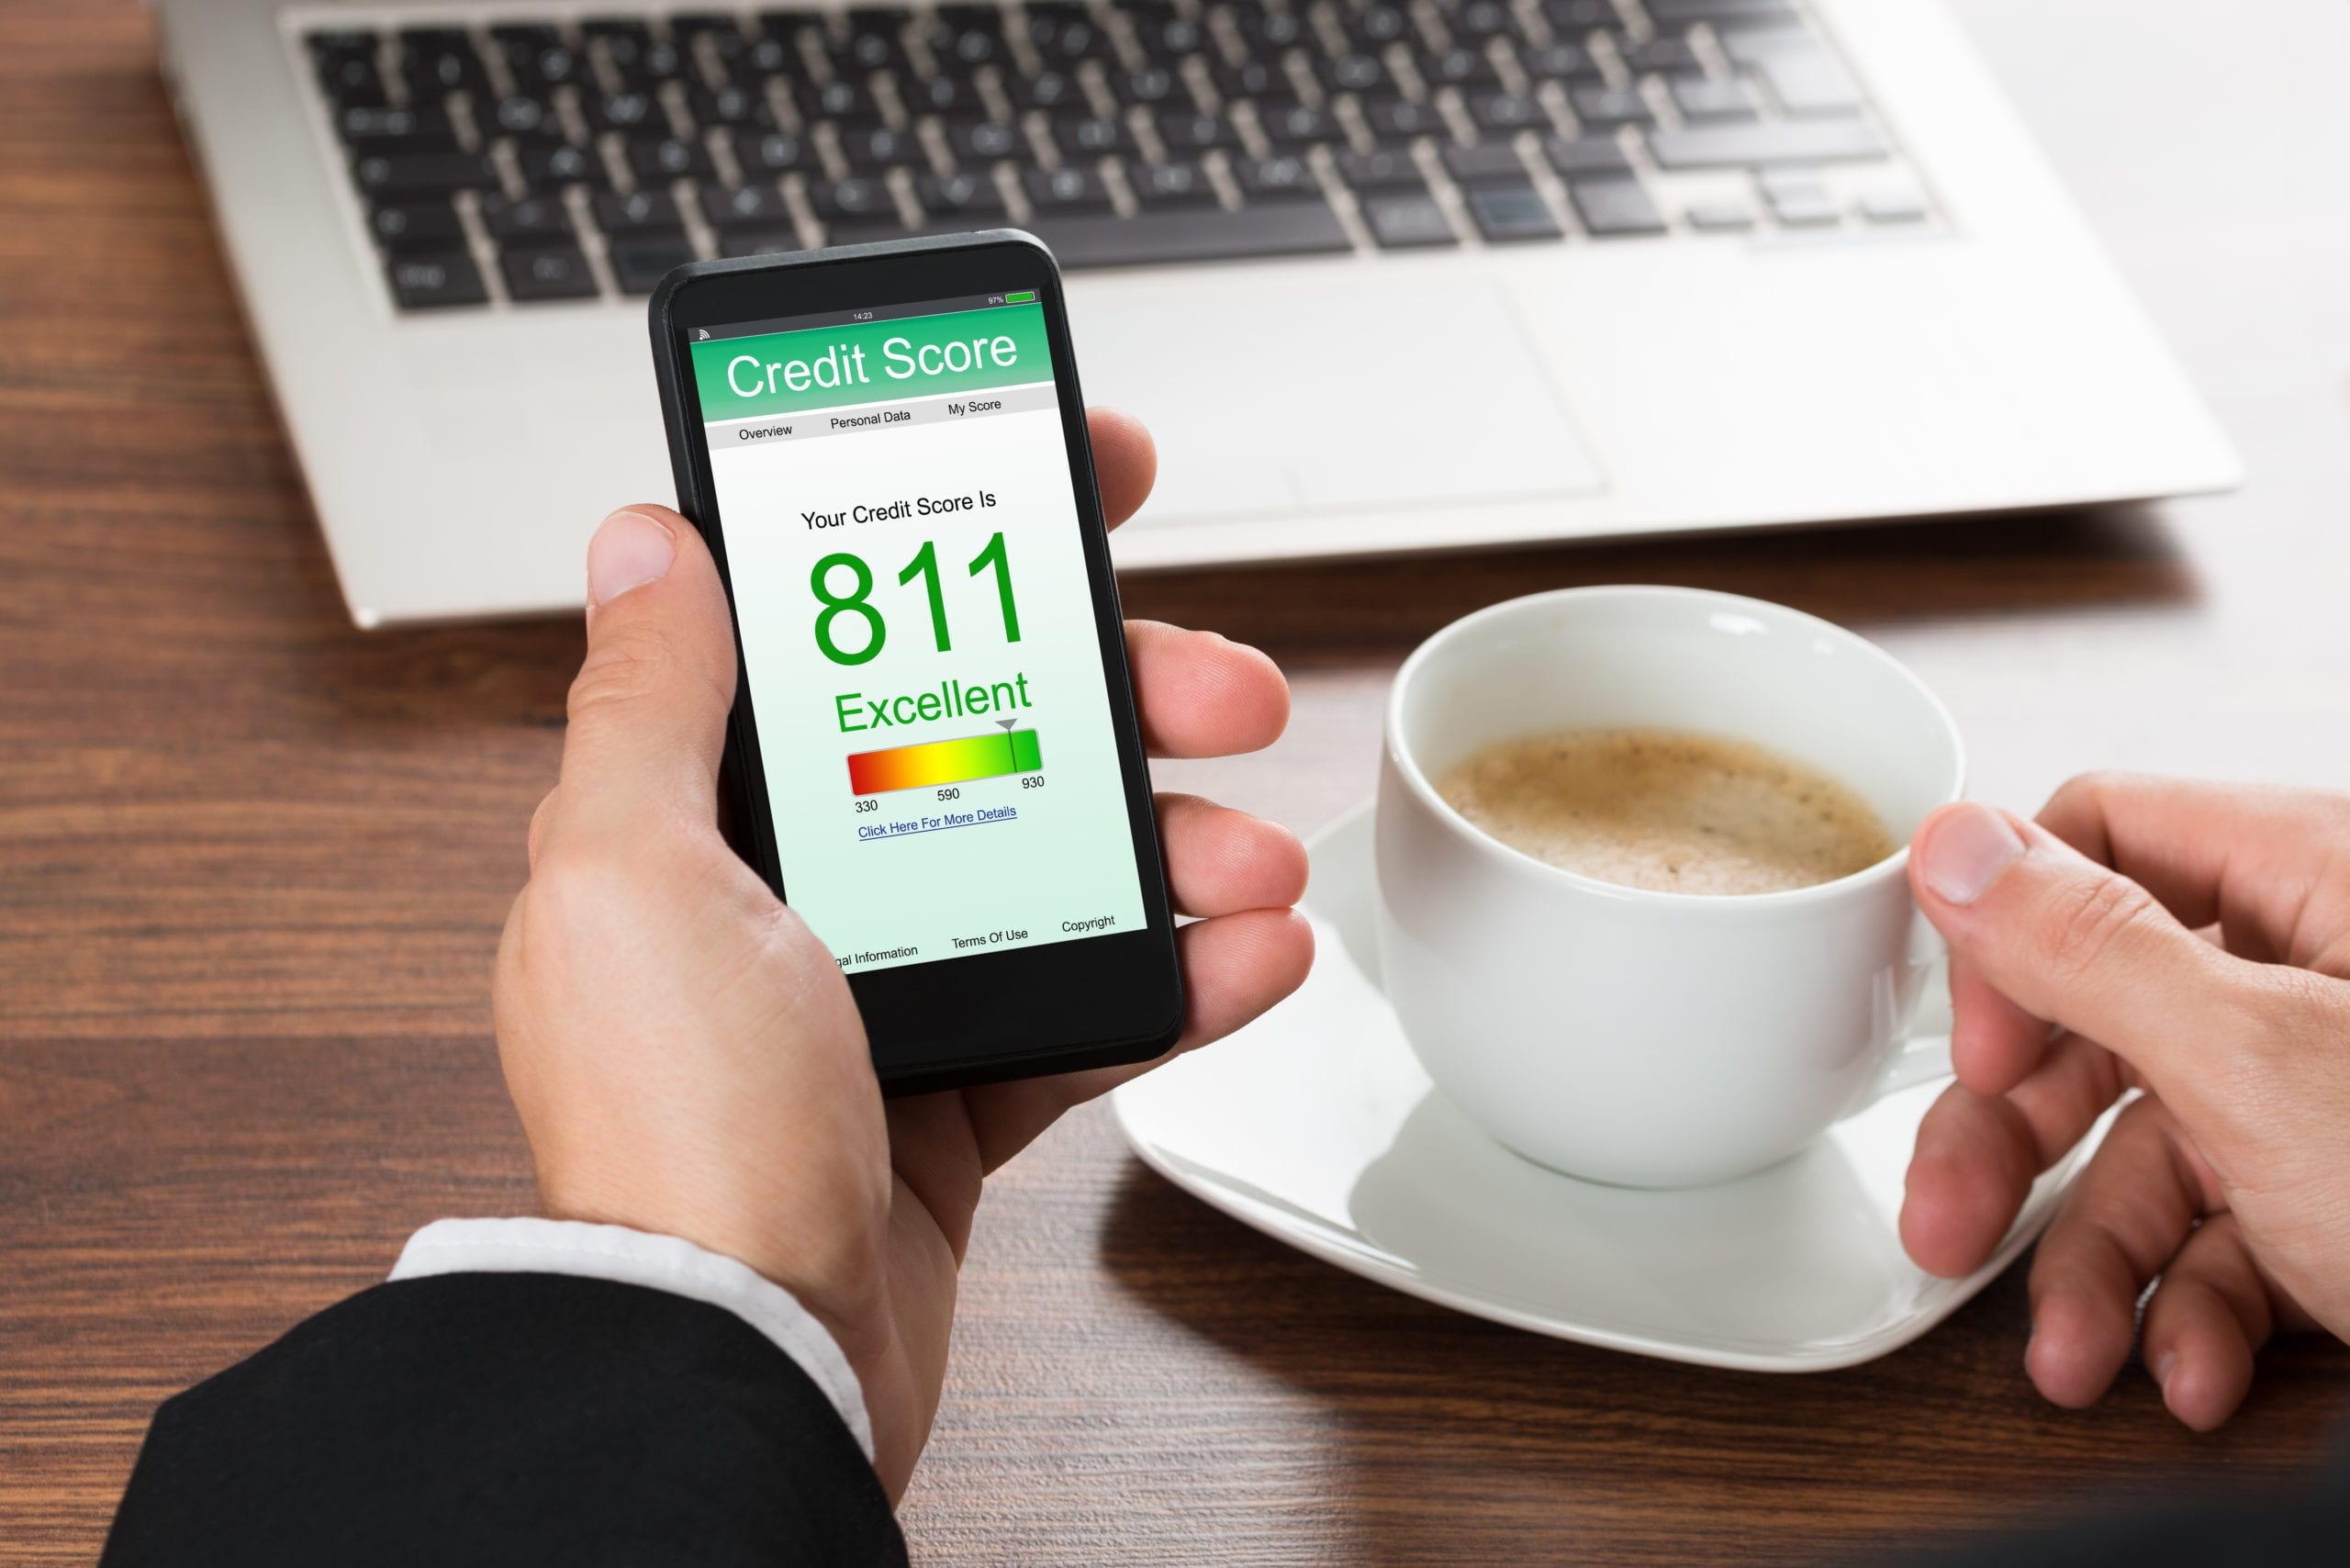 Checking Credit Score Online On Cellphone While Having Coffee. Get your credit score above 800. High Credit Score.